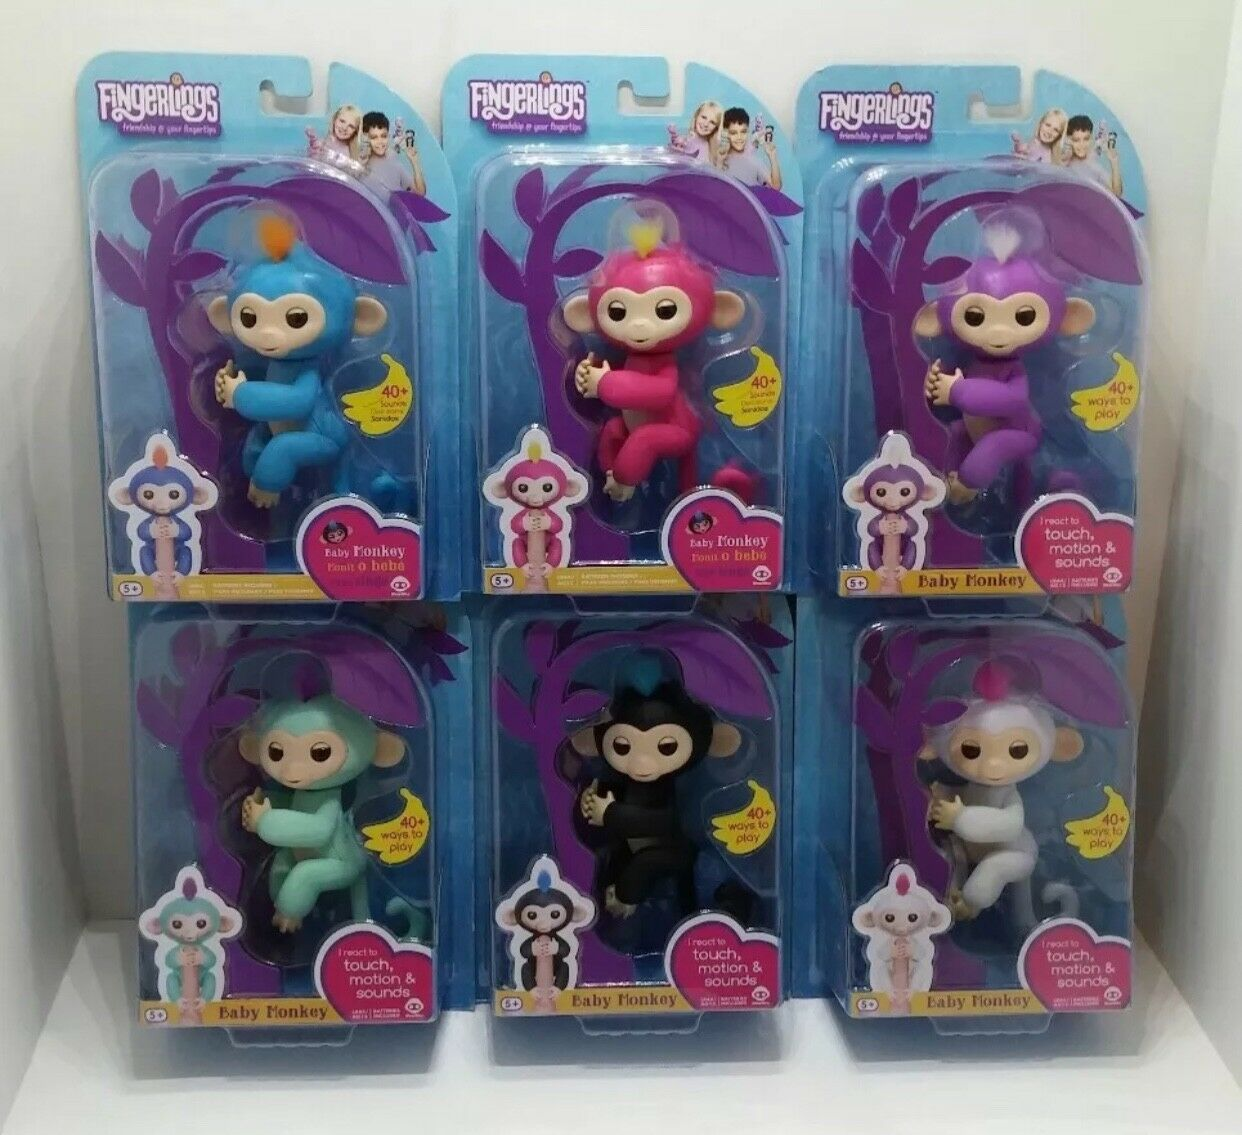 Fingerlings Complete Set of 6 WowWee Authentic Fingerling Monkeys  PRIORITY SHIP